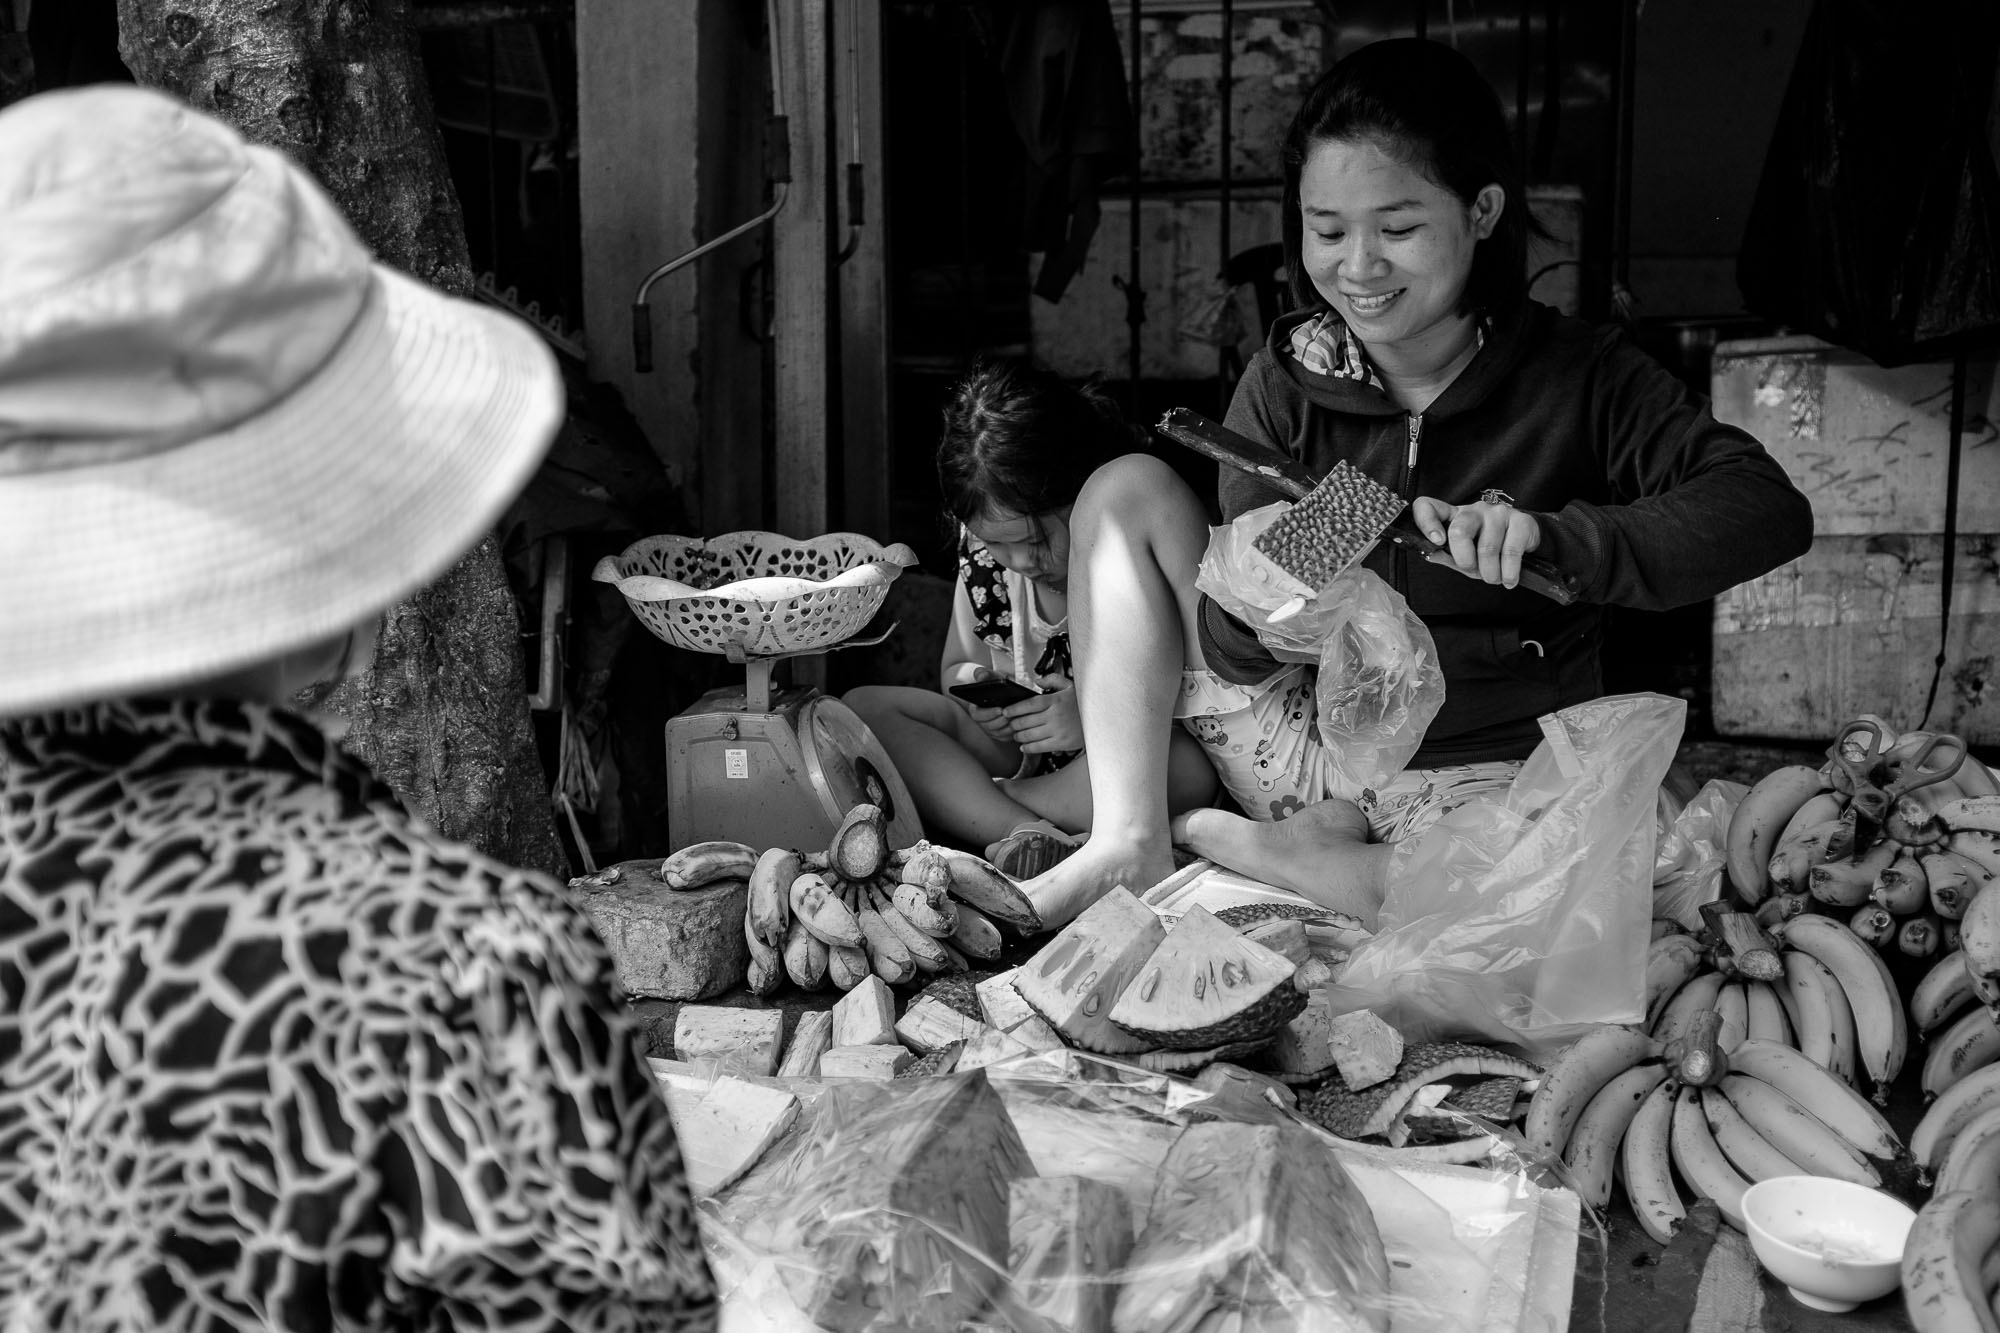 A vendor is cutting fruit, while her daughter is playing with her phone beside her